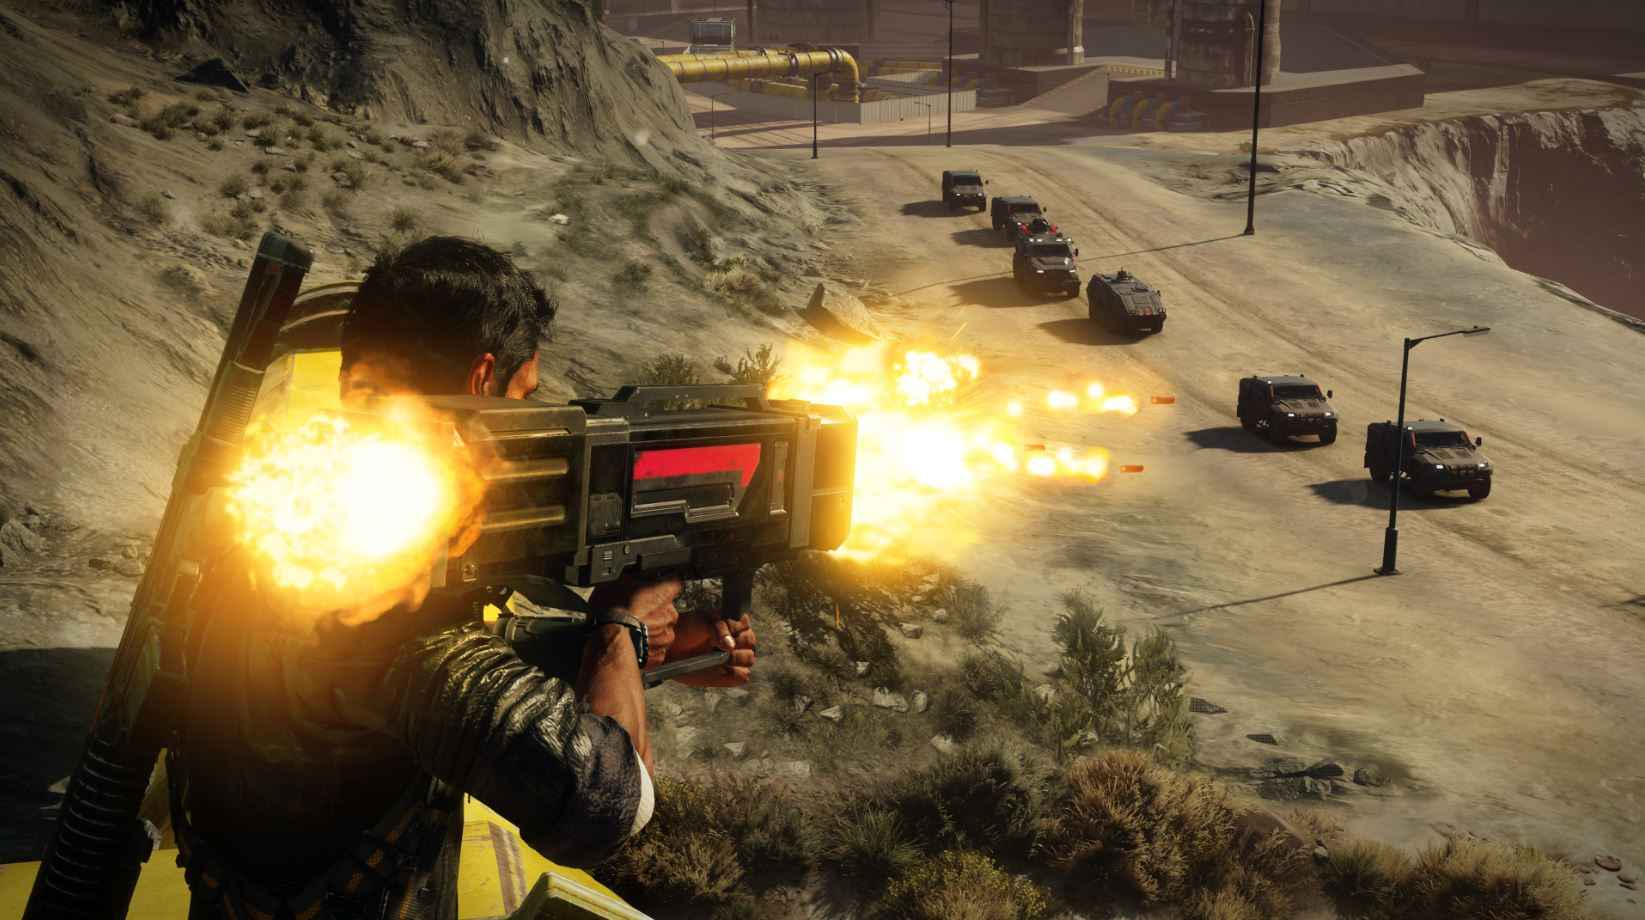 Just Cause 4 encourages experimentation beyond just shooting.